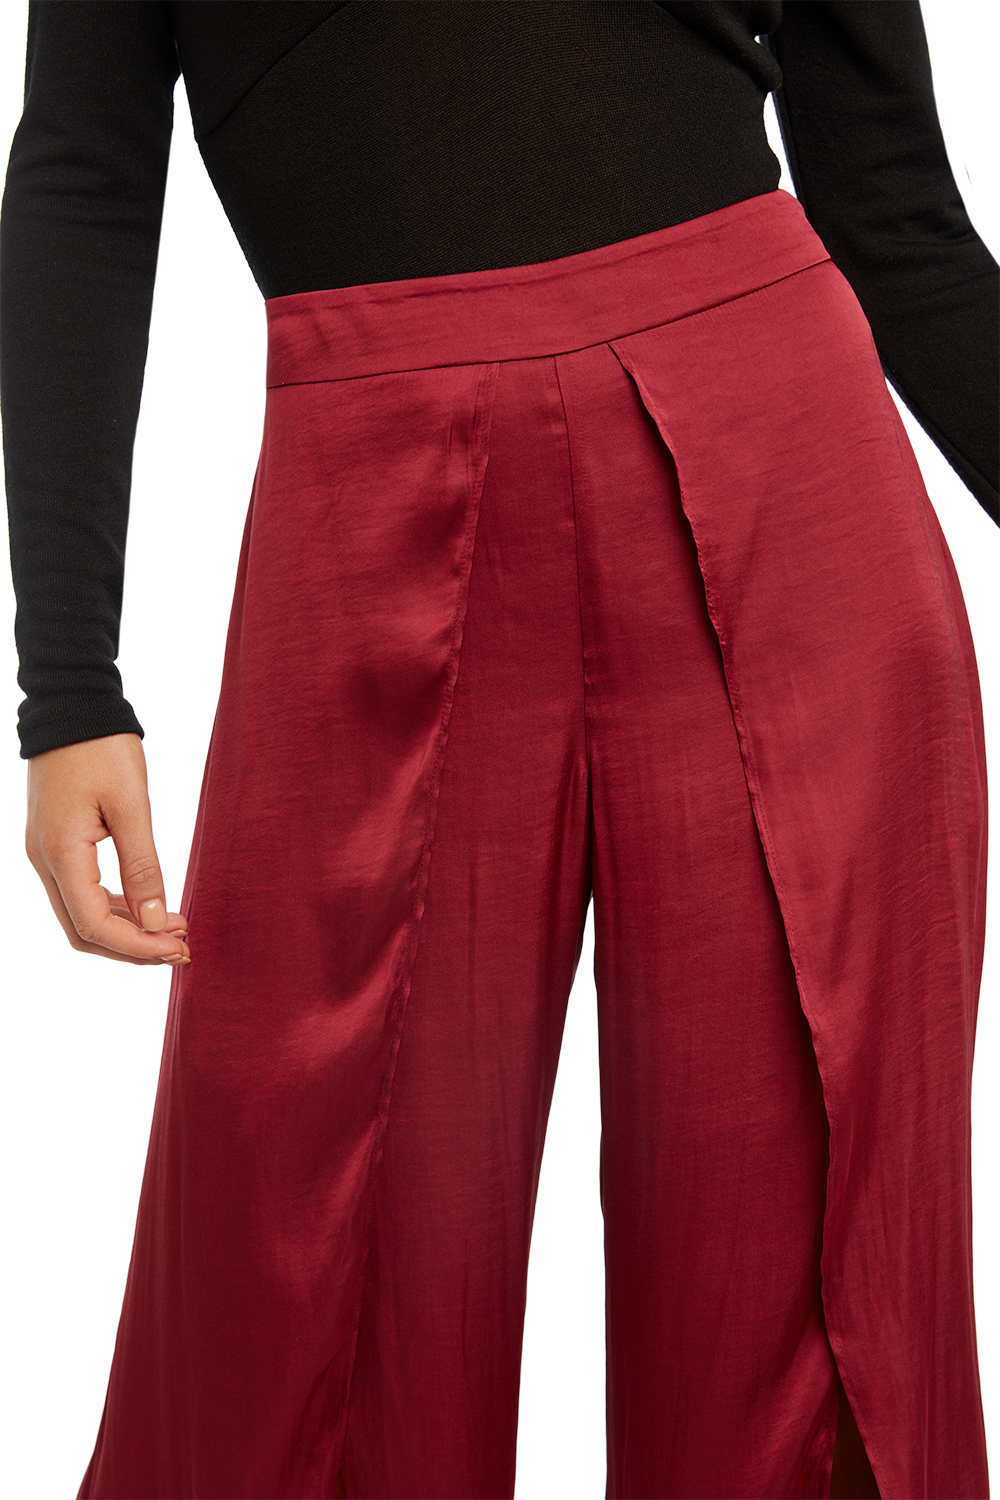 KAYLAH PETAL PANT in colour DRY ROSE